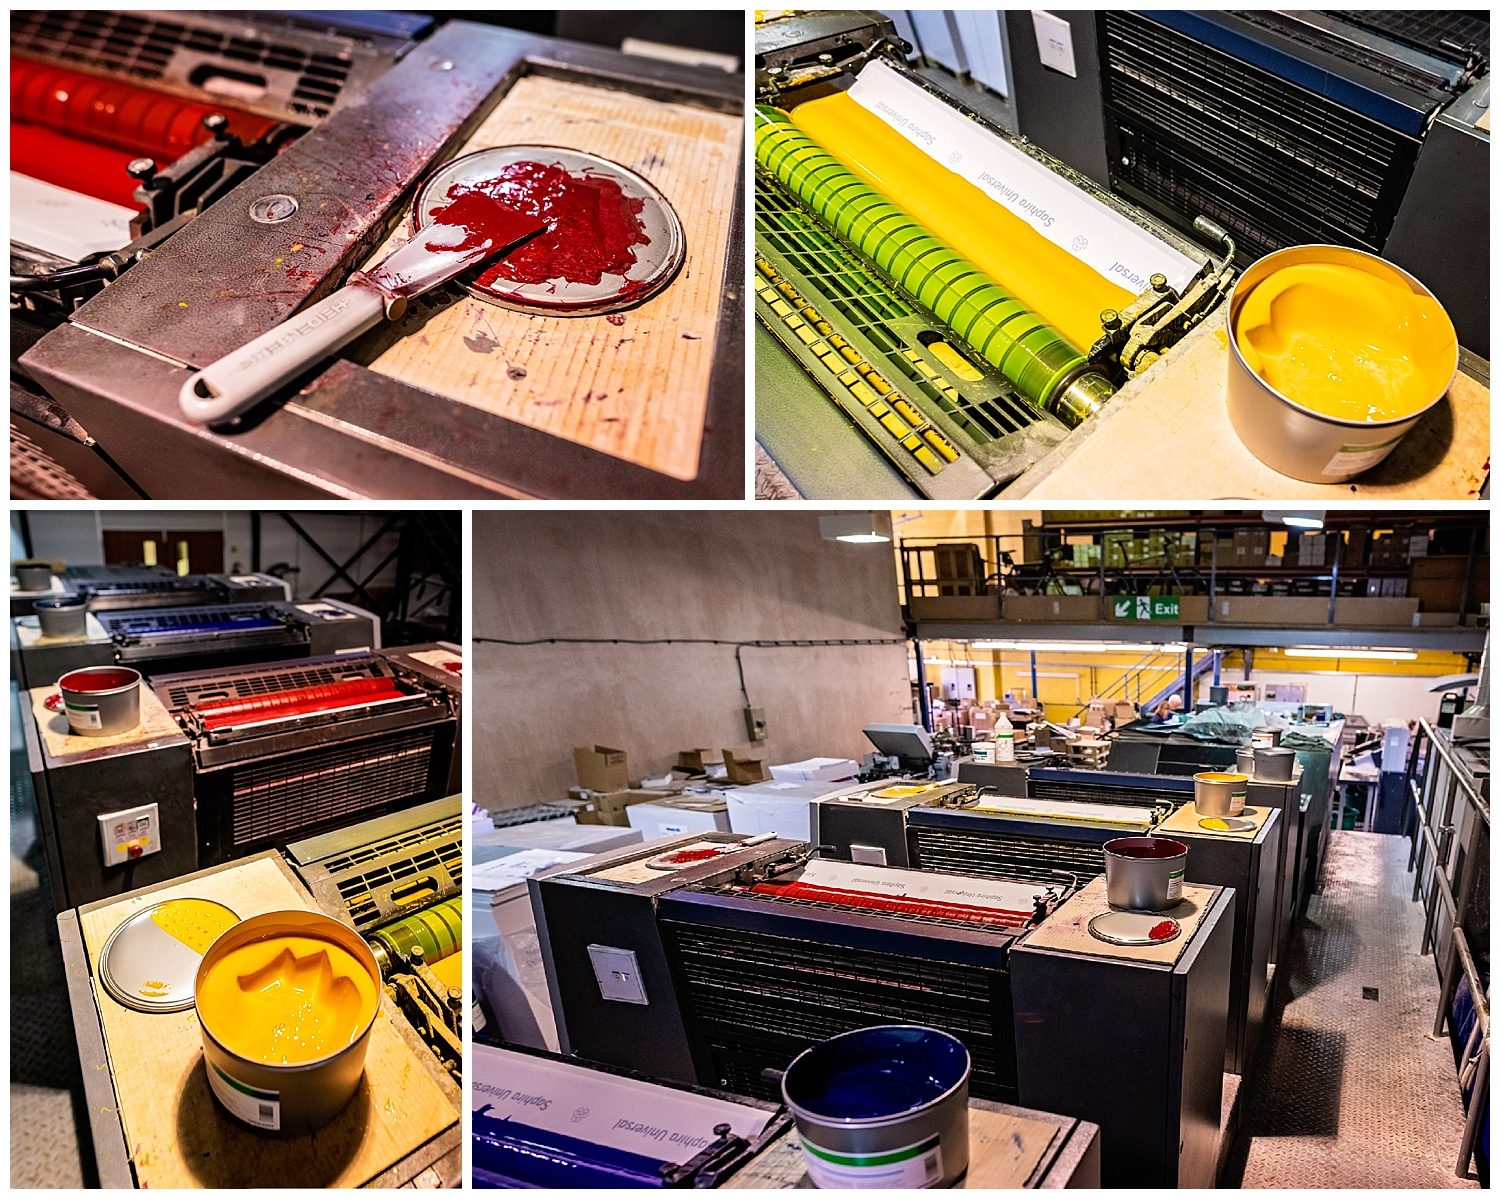 Montage of shots of printer's ink pots sat on the printing press